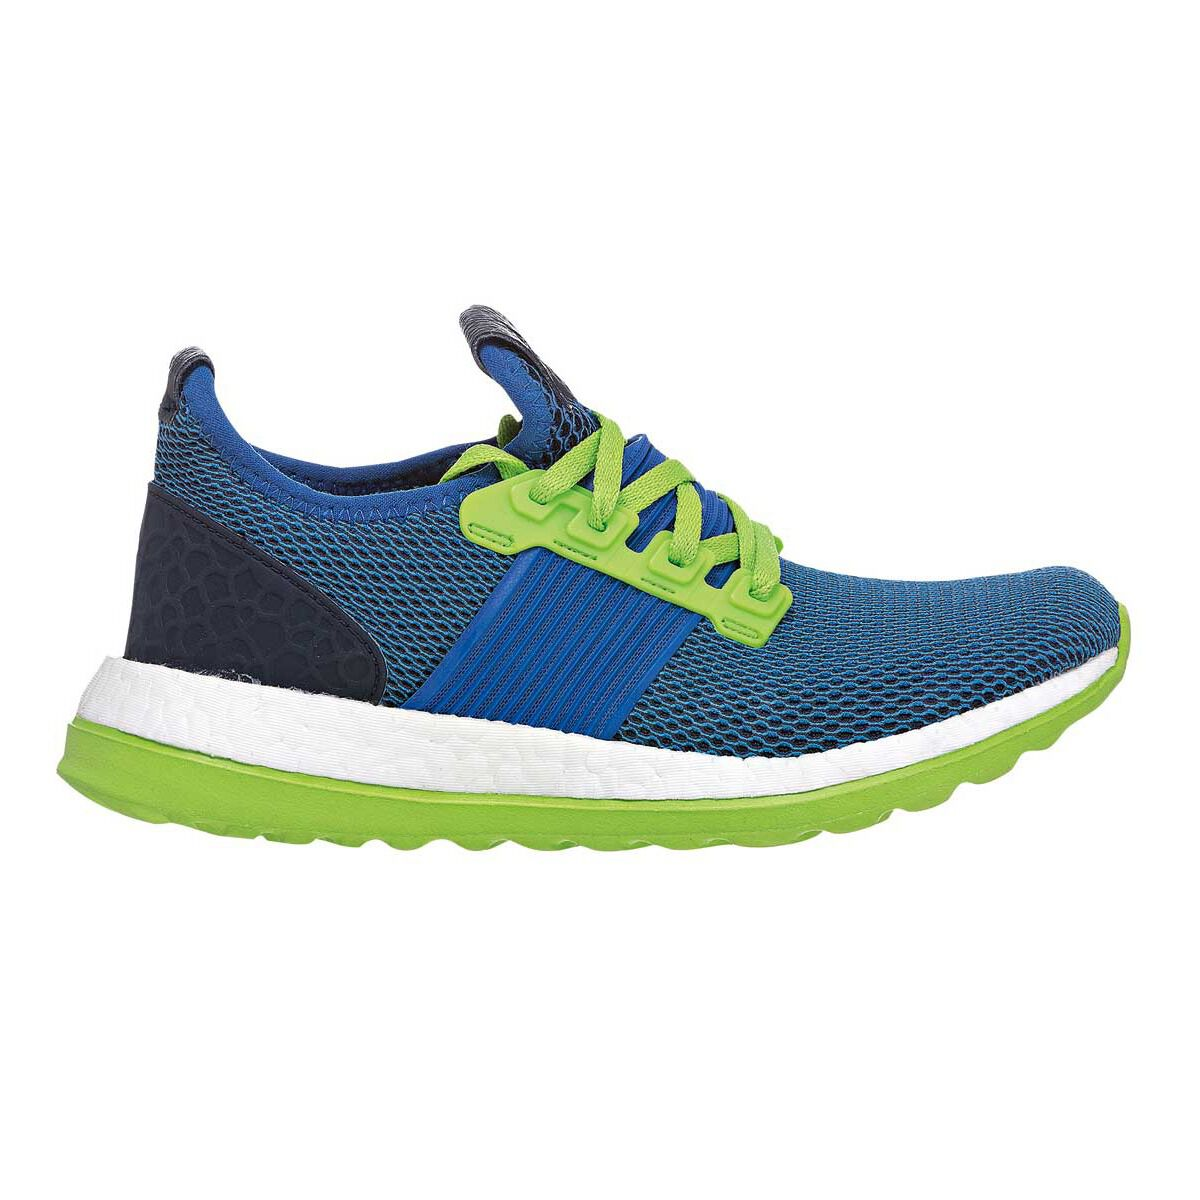 c8214b263d76d 04652 a3493  coupon for adidas pure boost zg boys running shoes blue green  us 7 blue green 1b7e0